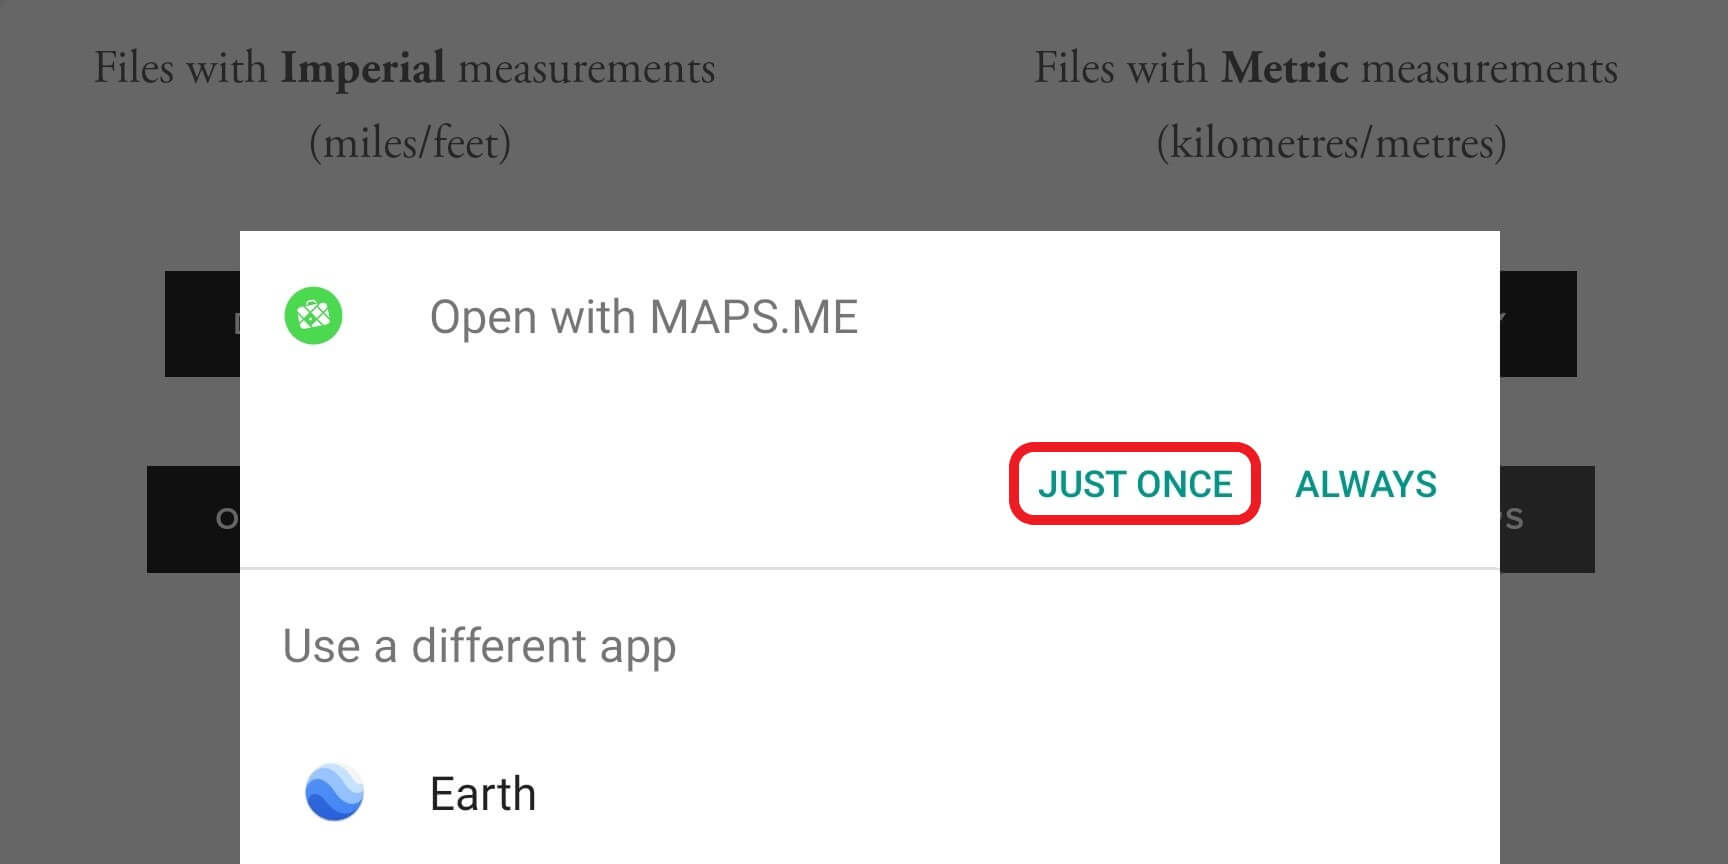 Image 4:  Choose to open the file with Maps.Me